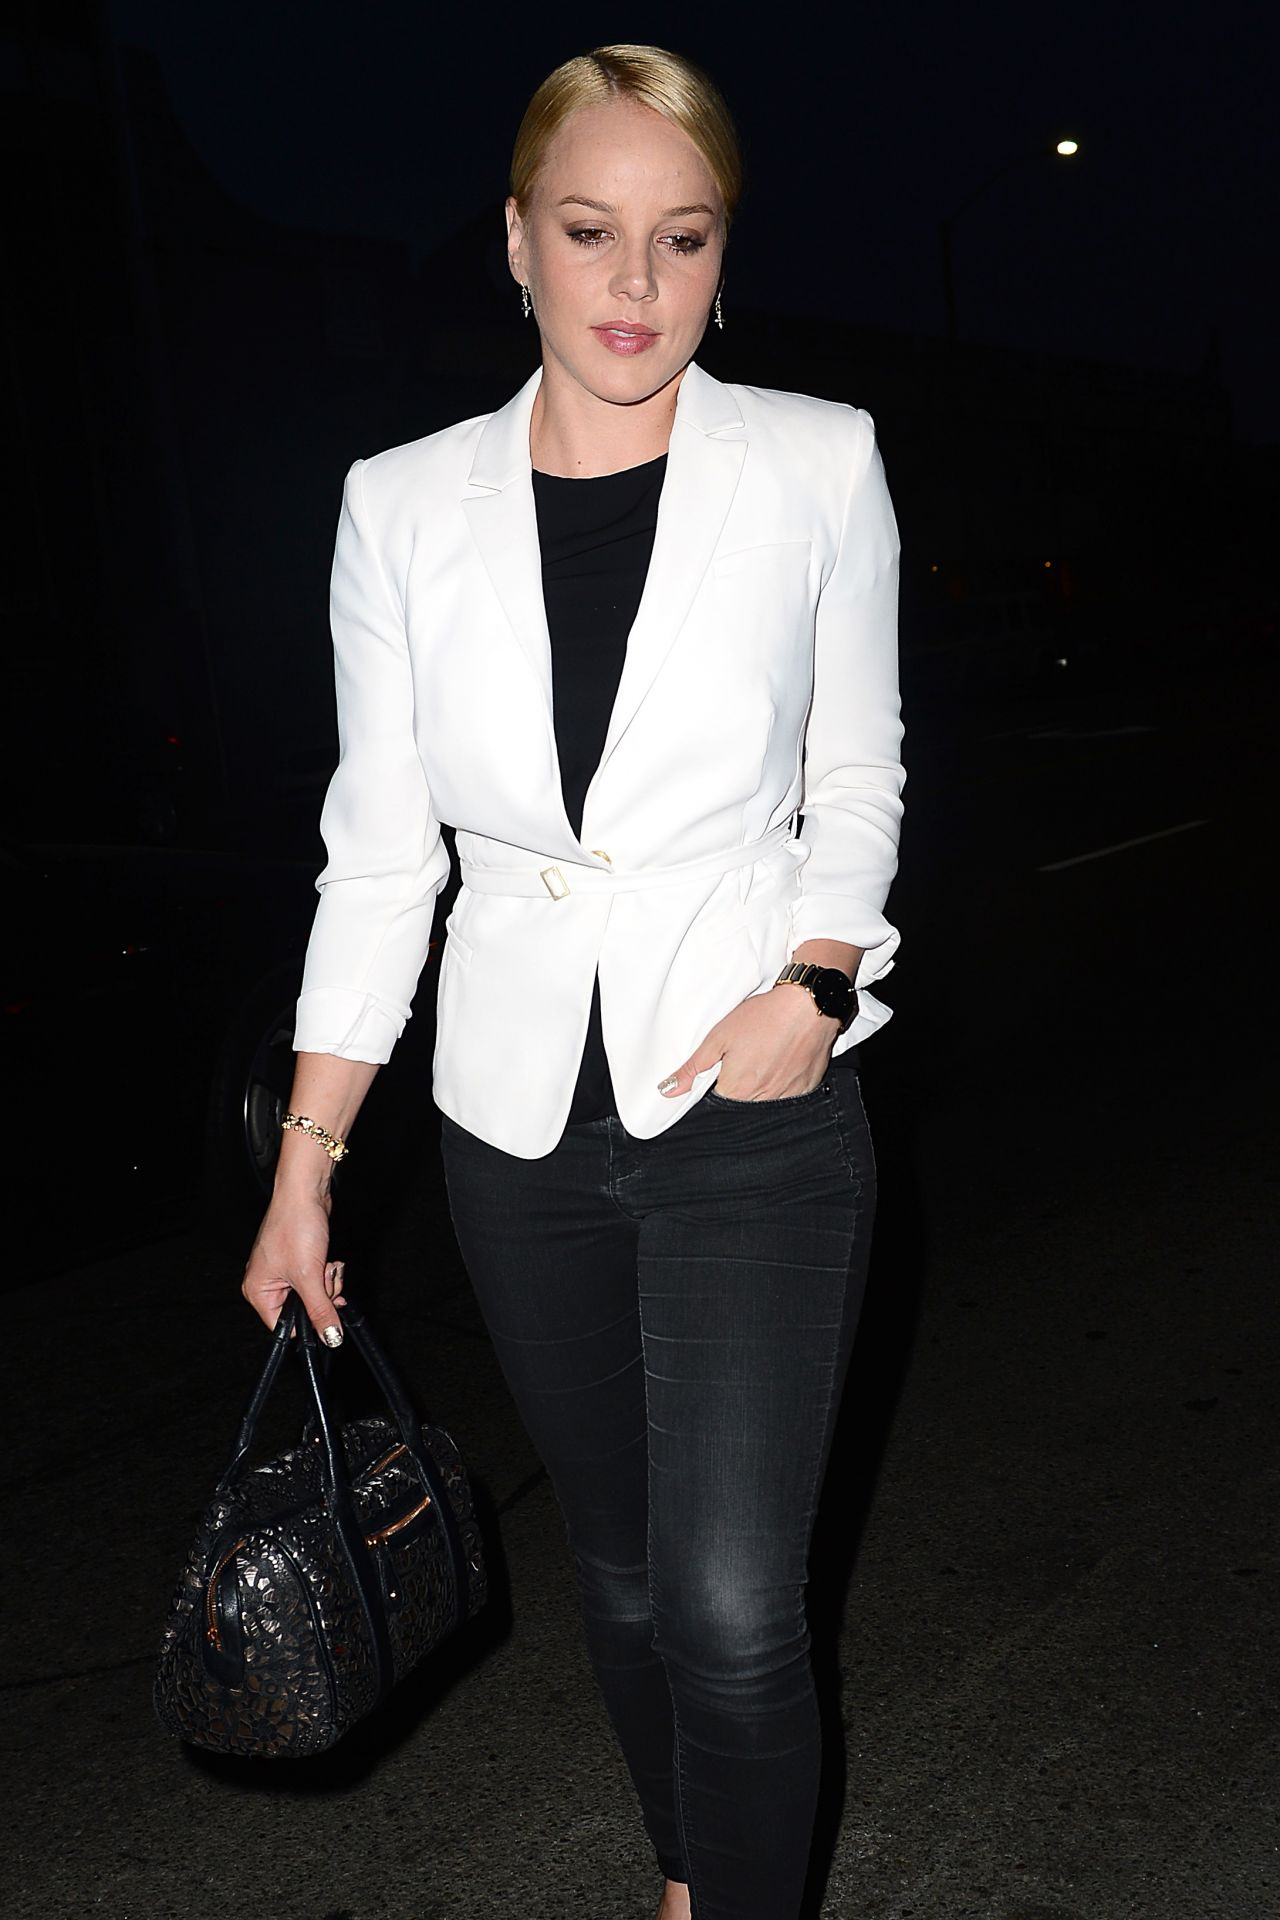 Abbie Cornish Night Out Style - at Crossroads in West Hollywood - June 2014